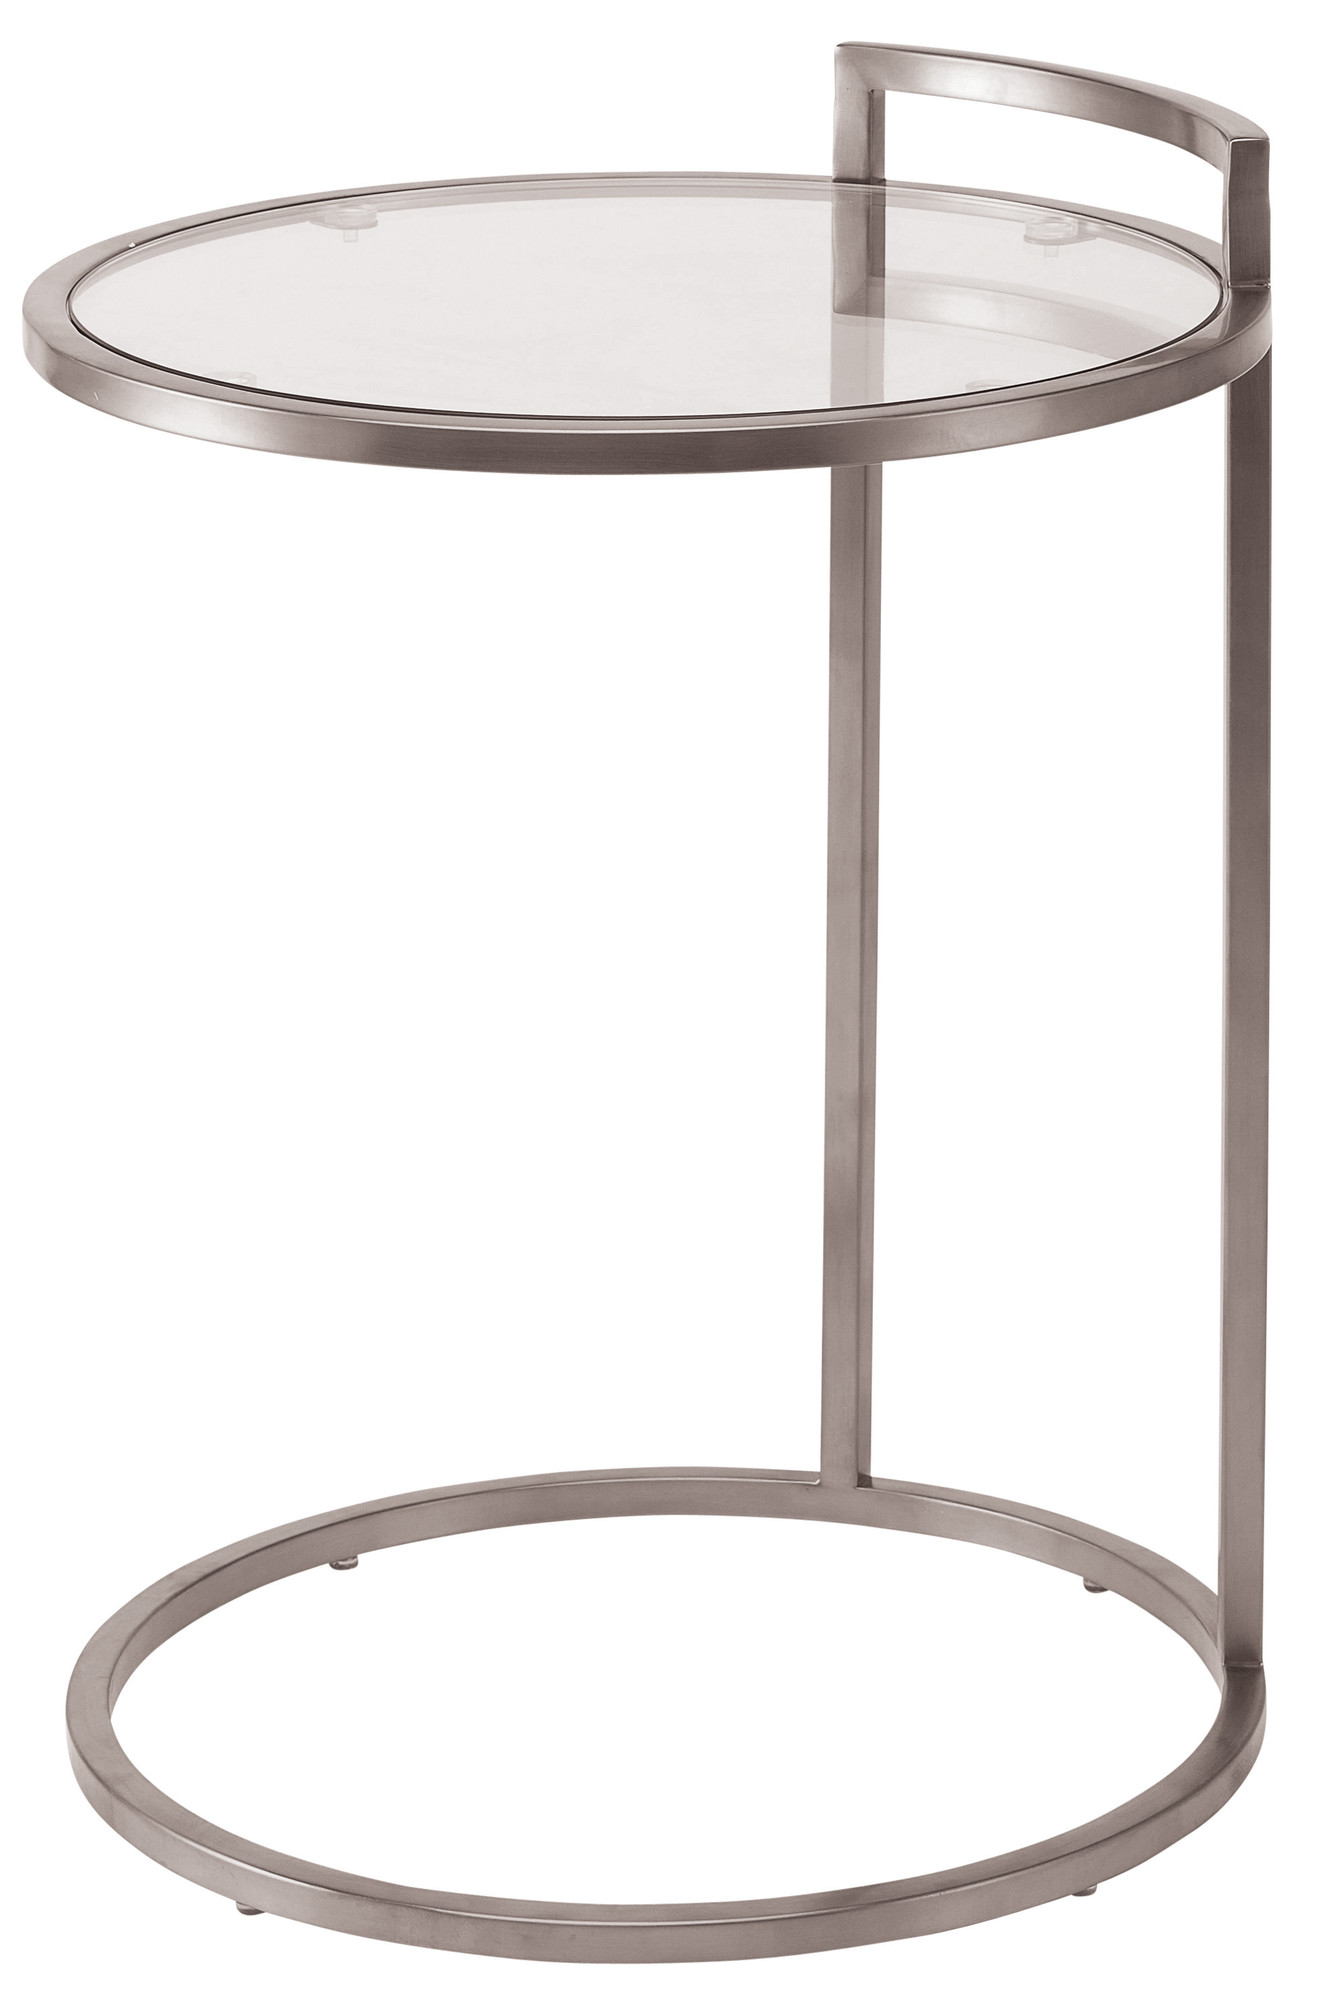 lily-side-table-stainless-steel.jpg